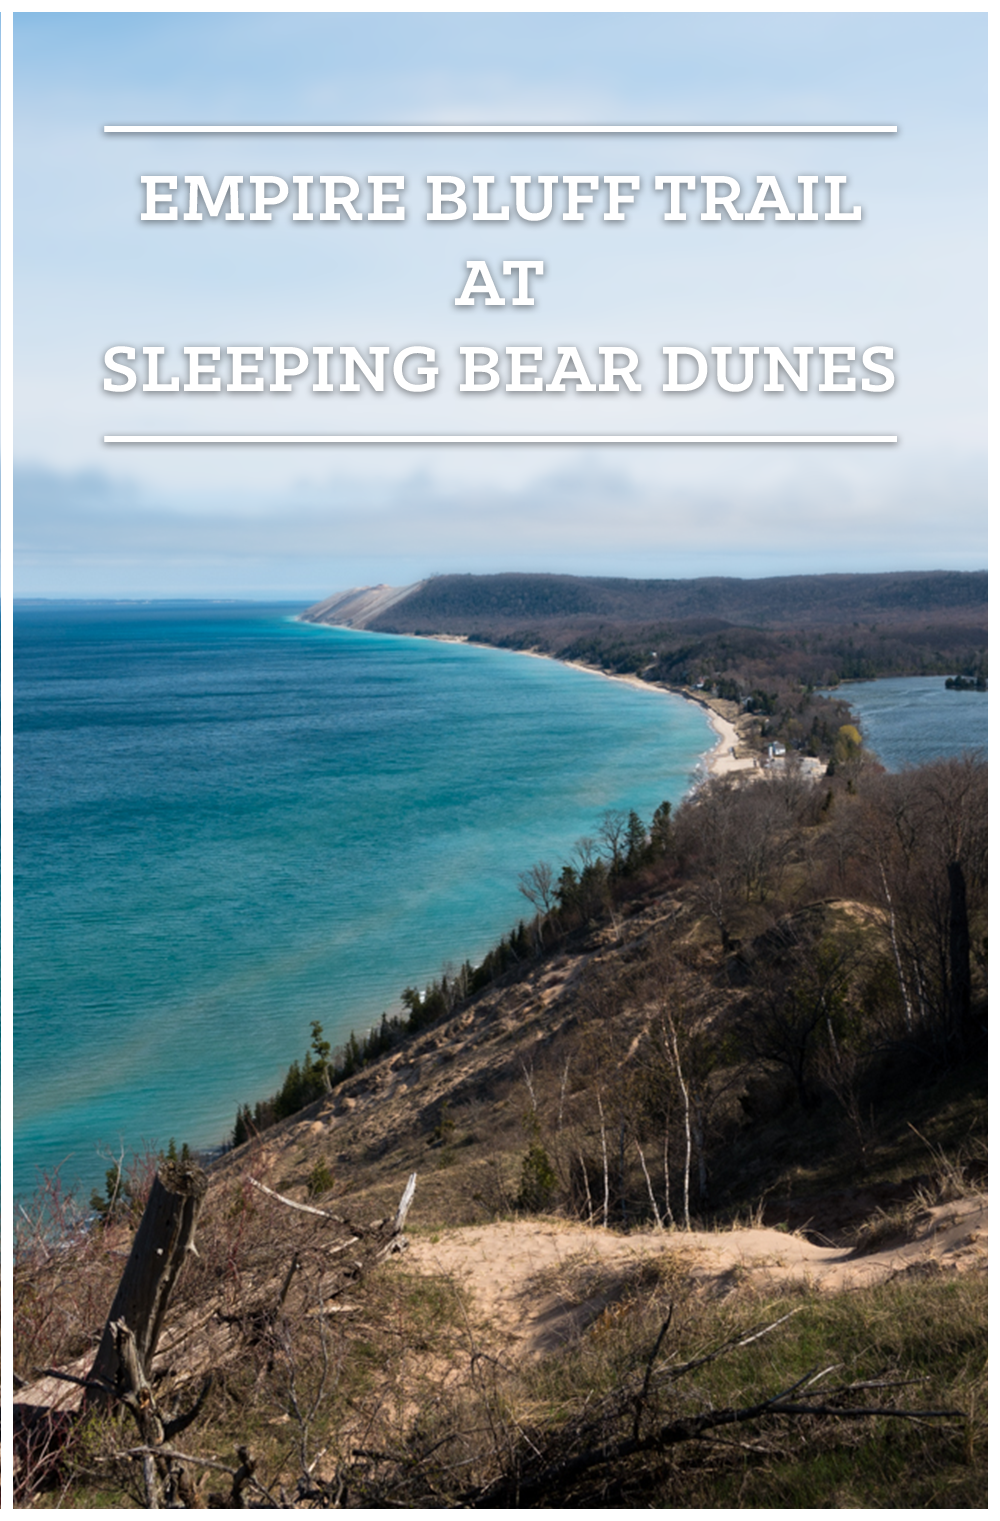 A guide to hiking the Empire Bluff Trail at Sleeping Bear Dunes. This trail was voted one of the ten best walks in America!